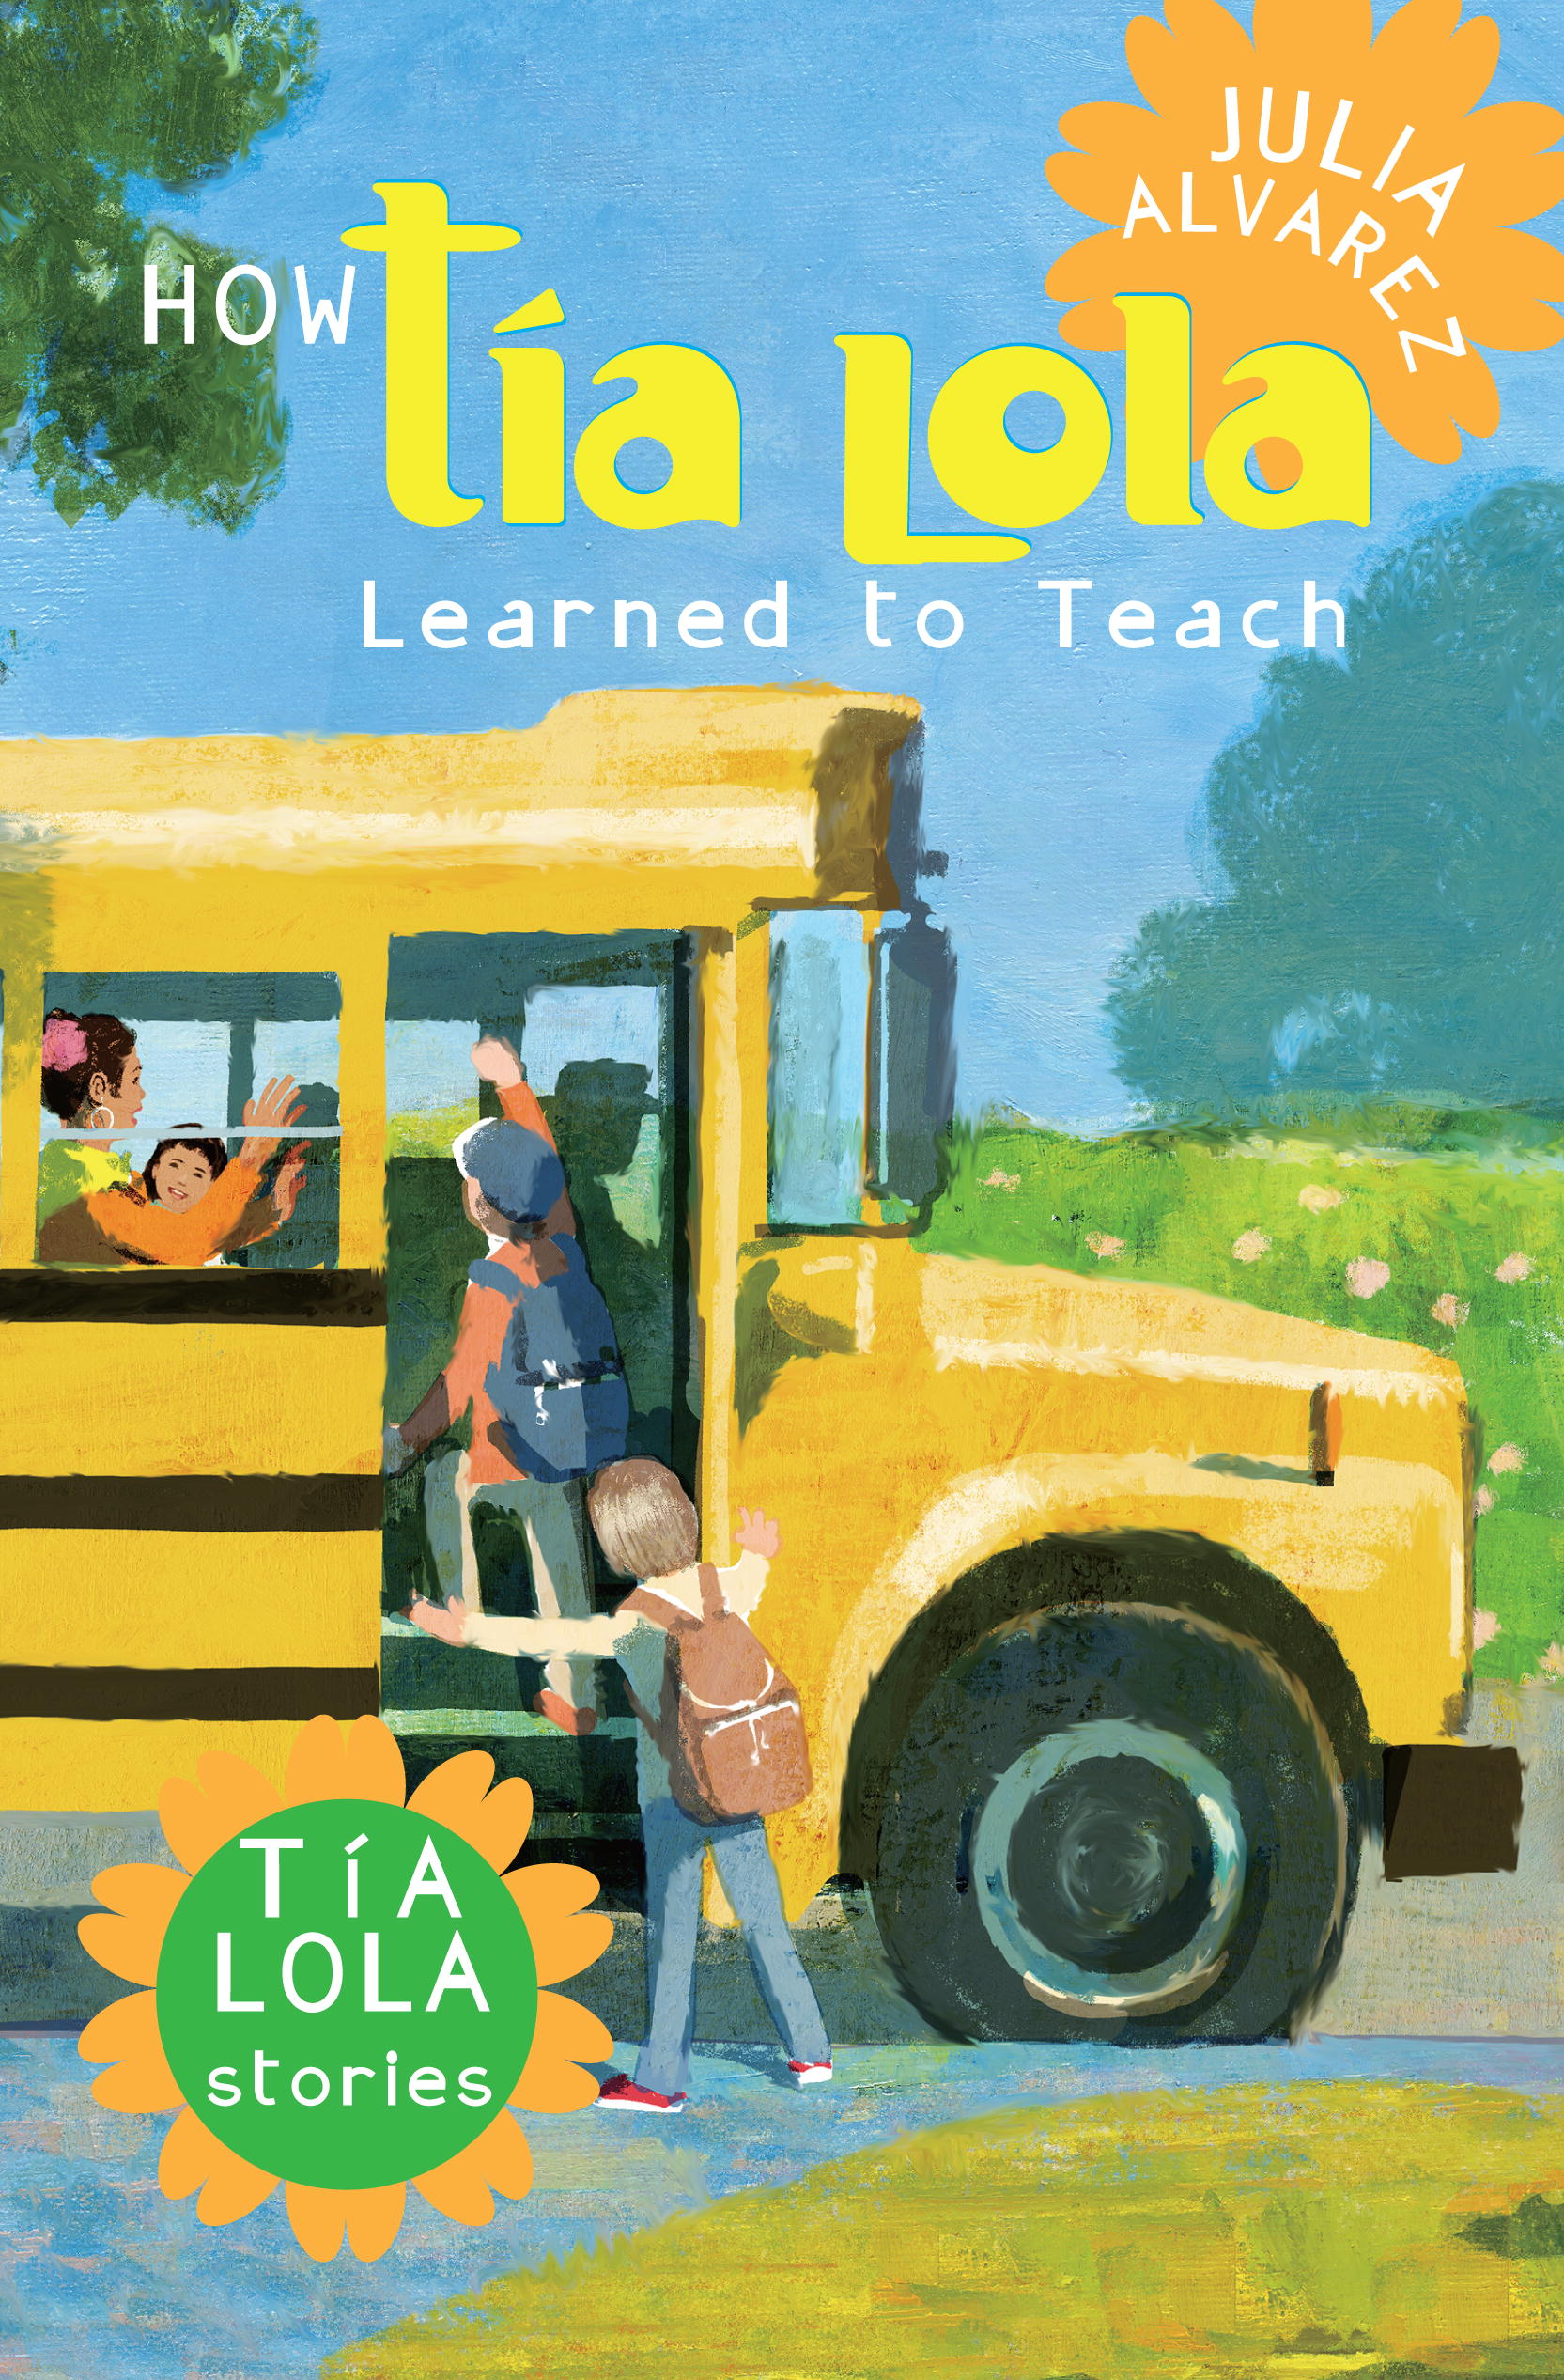 how tia lola learned to teach cover